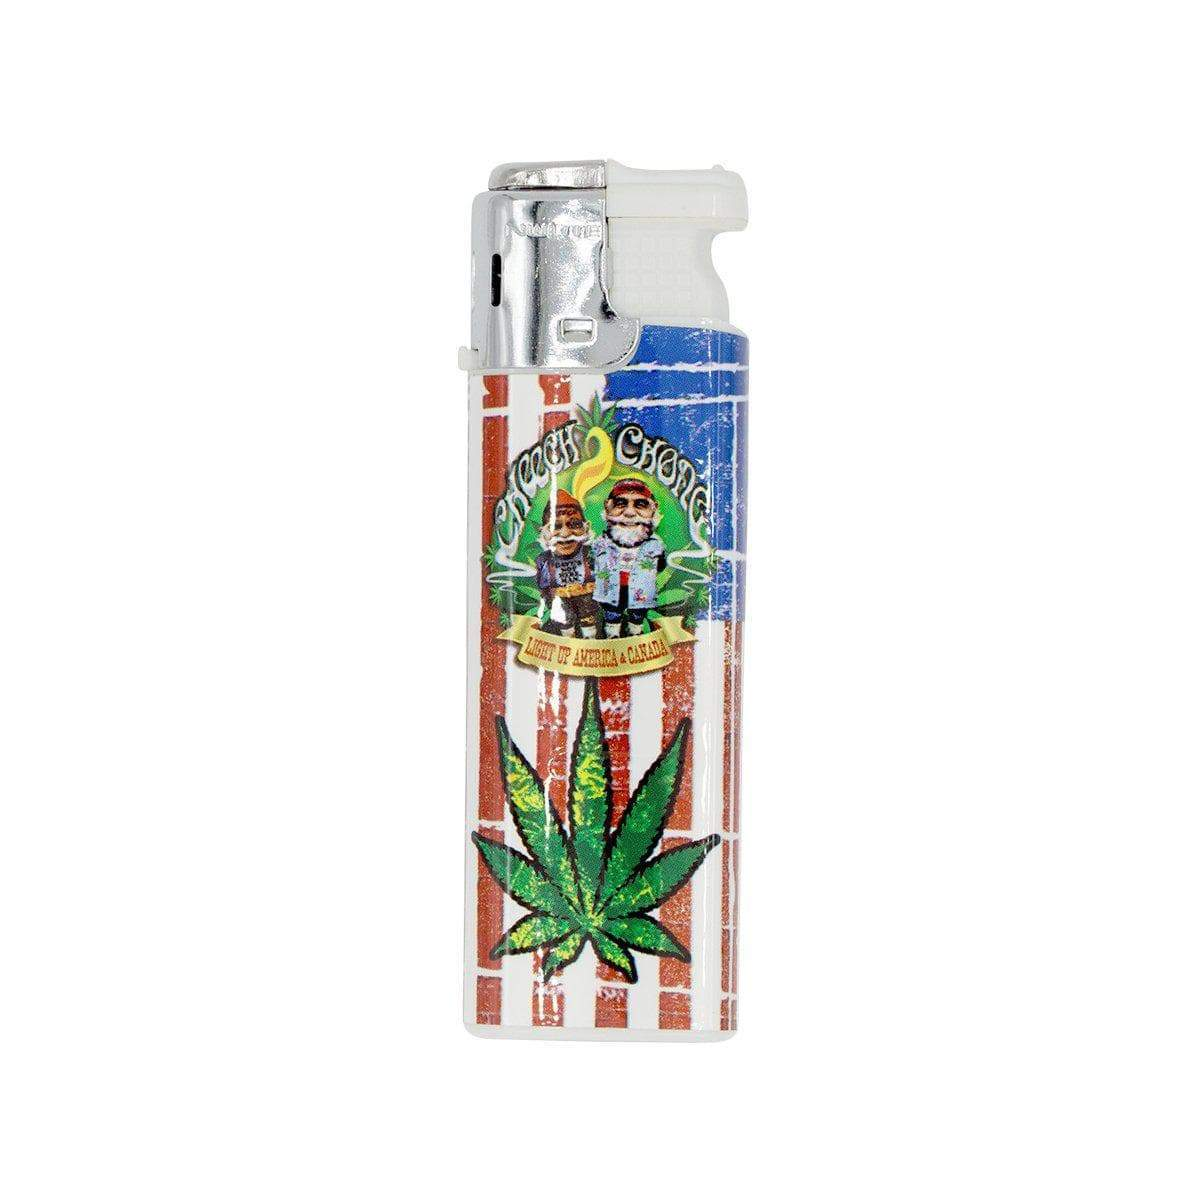 2 packs lighter torch smoking accessory with Cheech n Chong on USA flag and weed leaf design classic lighter shape